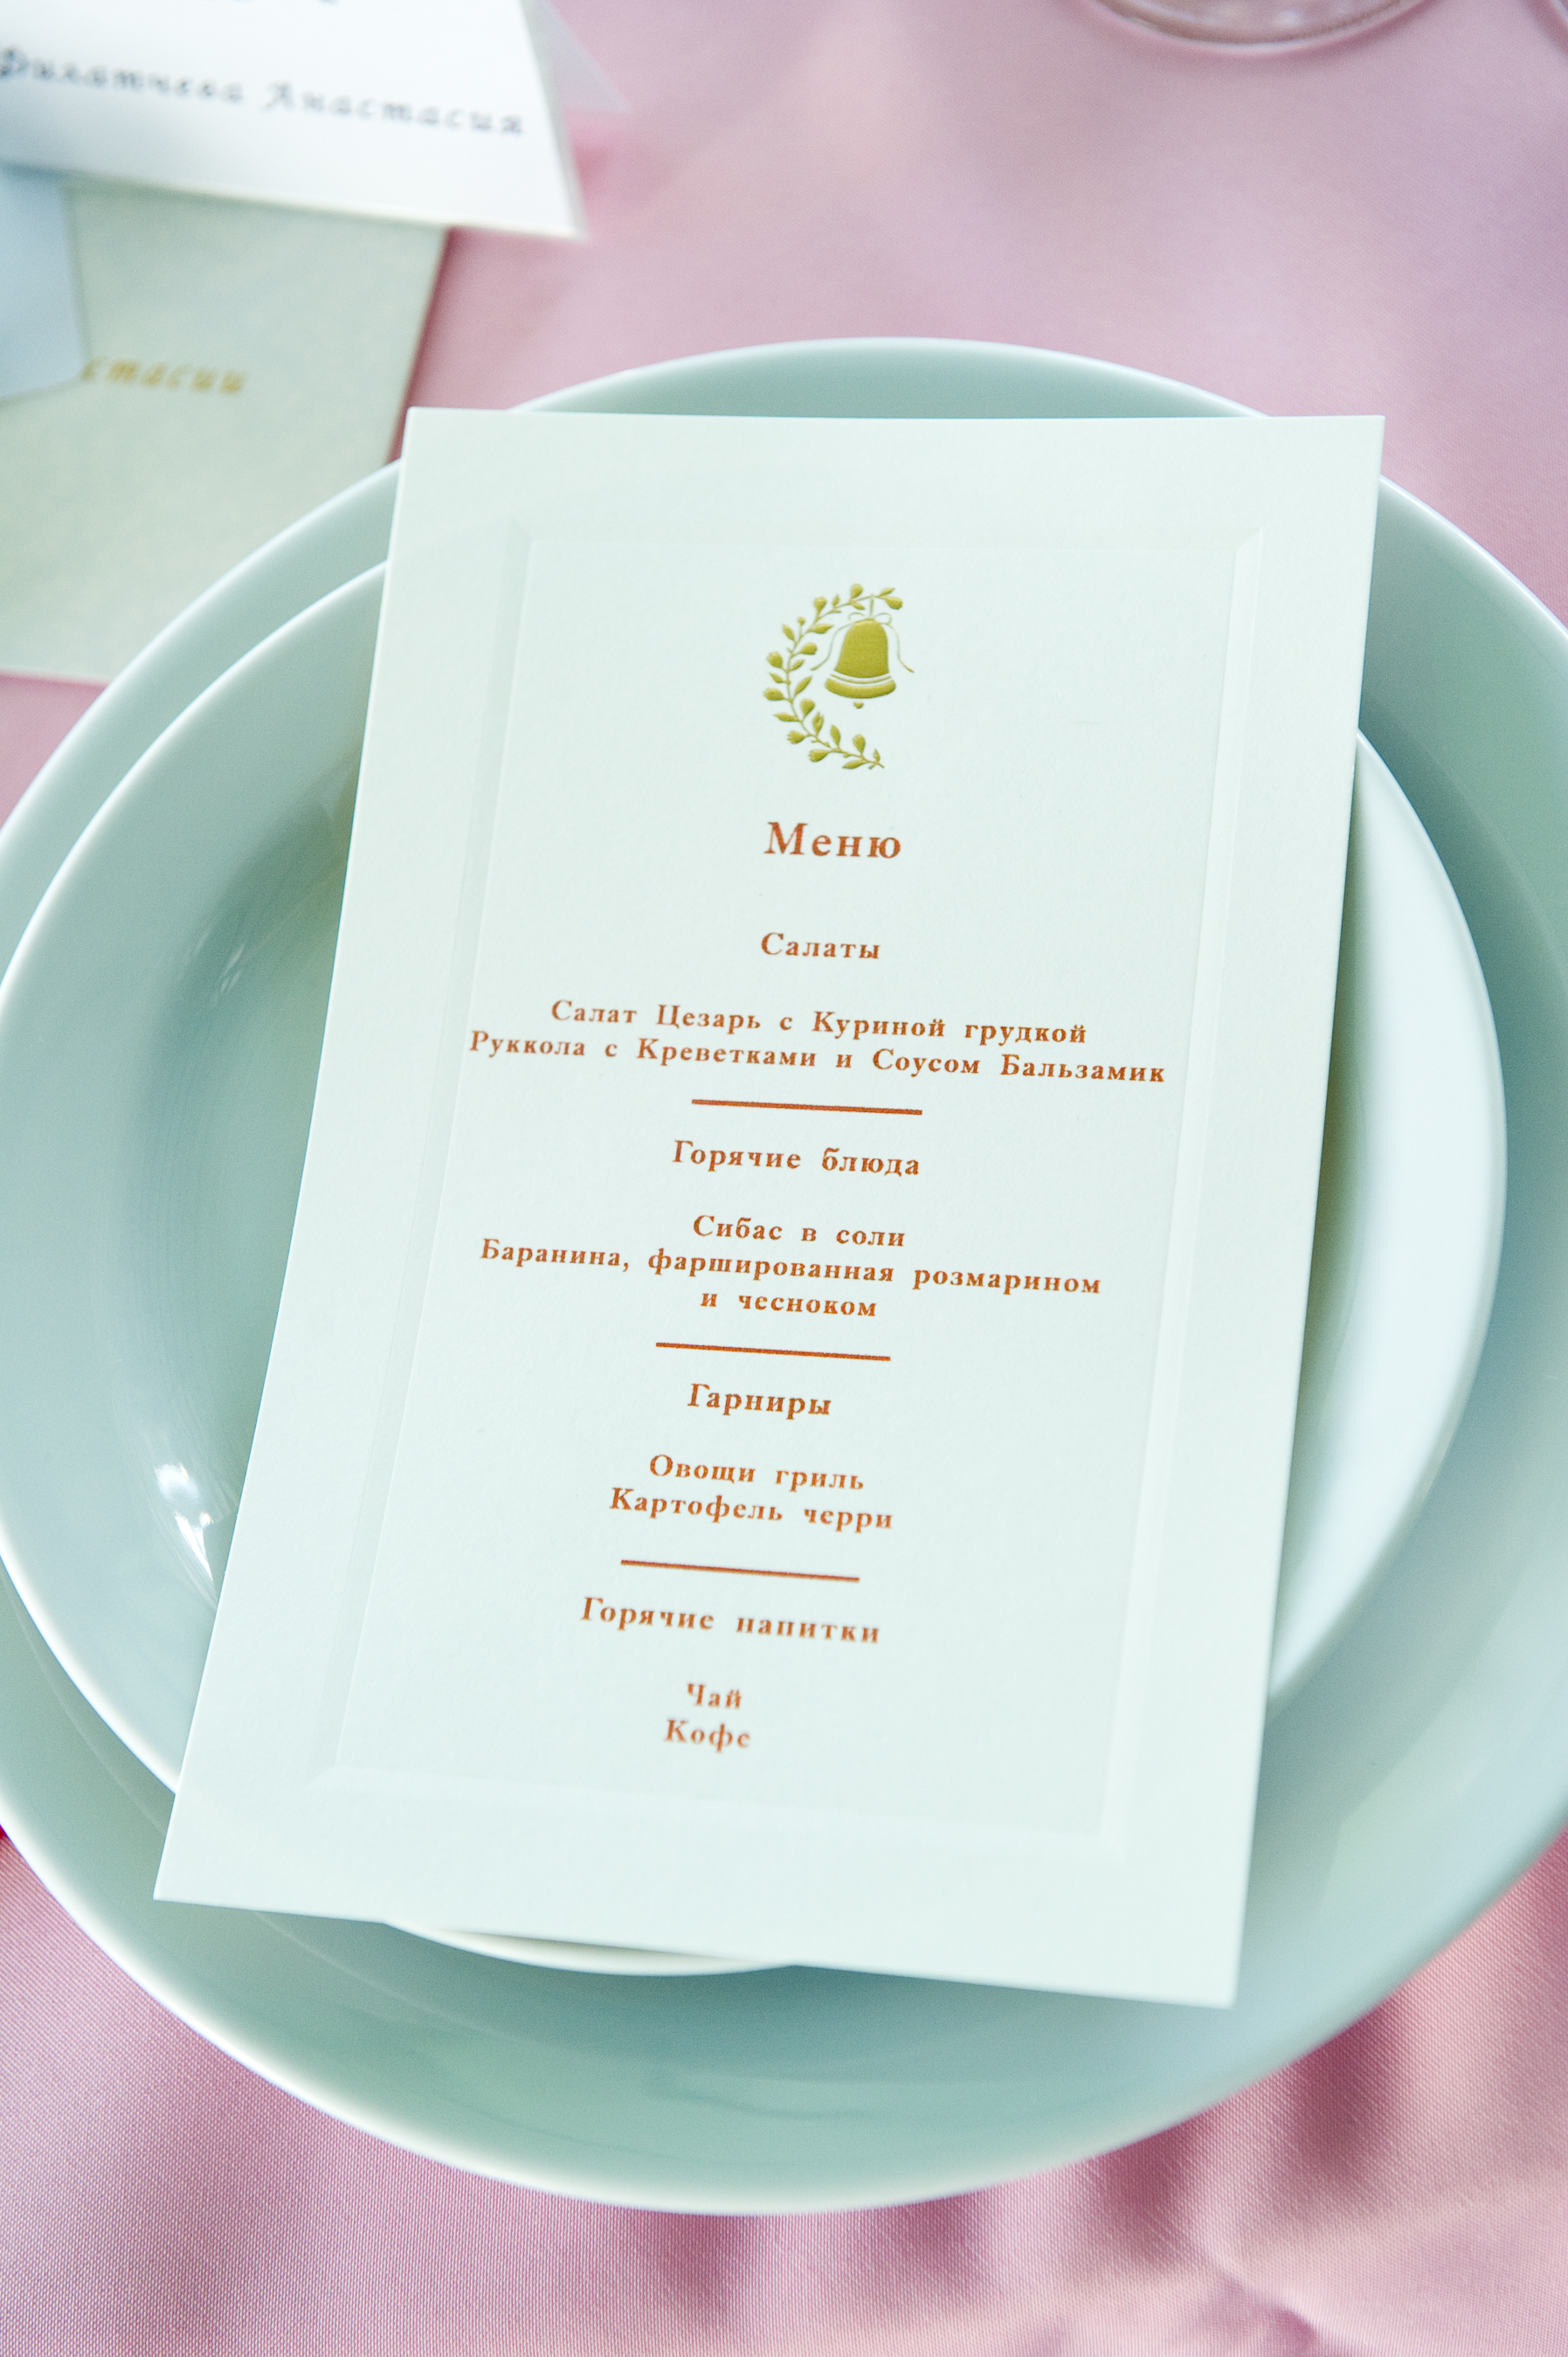 Reception, Flowers & Decor, Stationery, white, yellow, pink, brown, gold, Invitations, Menu Cards, Menu, Wedding, Banquet, Simple, Stationary, Menue, Peception